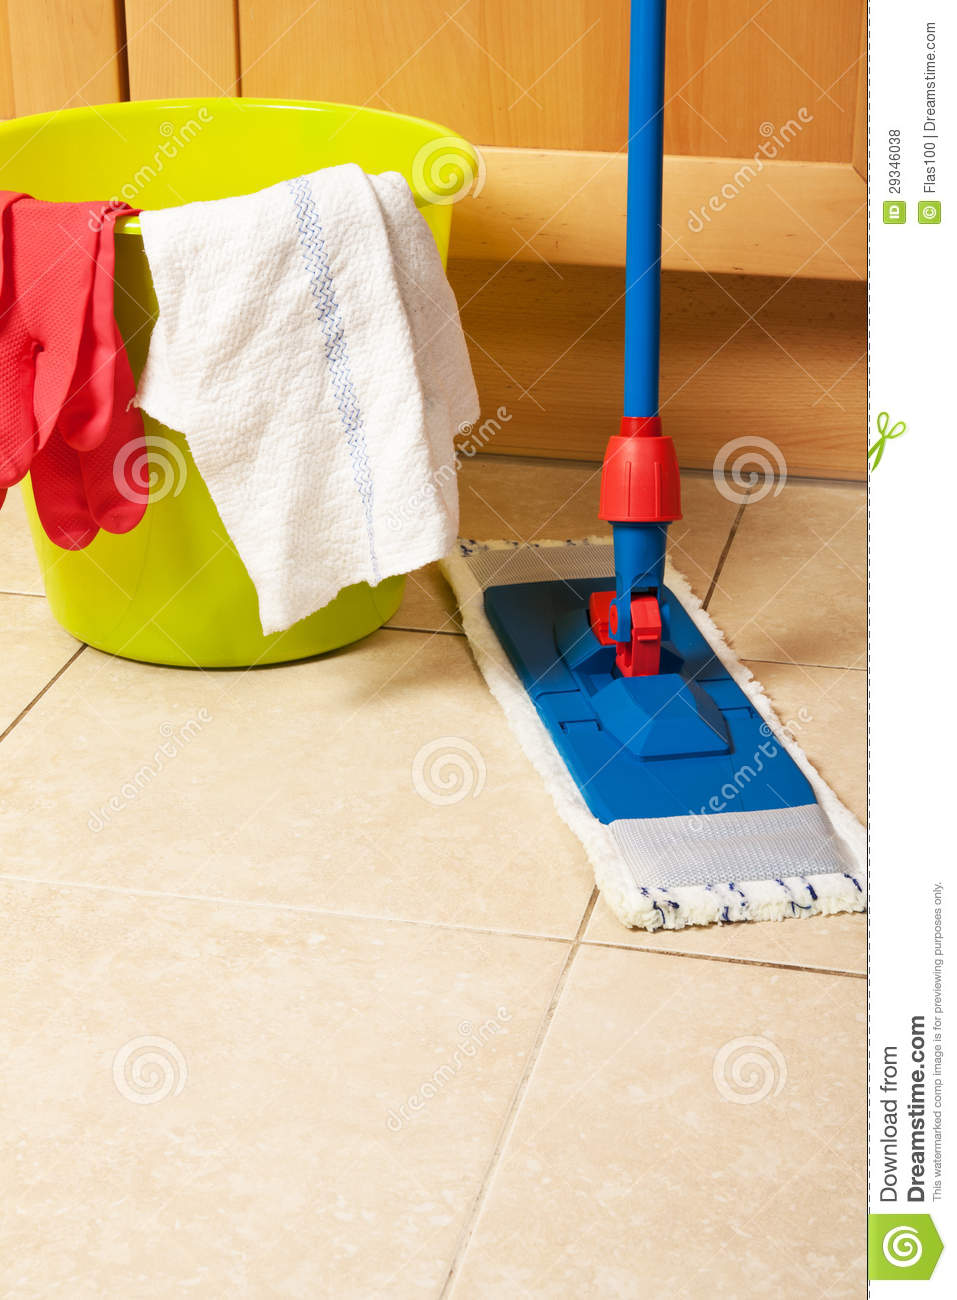 House cleaning with the mop royalty free stock photos for House cleaning stock photos